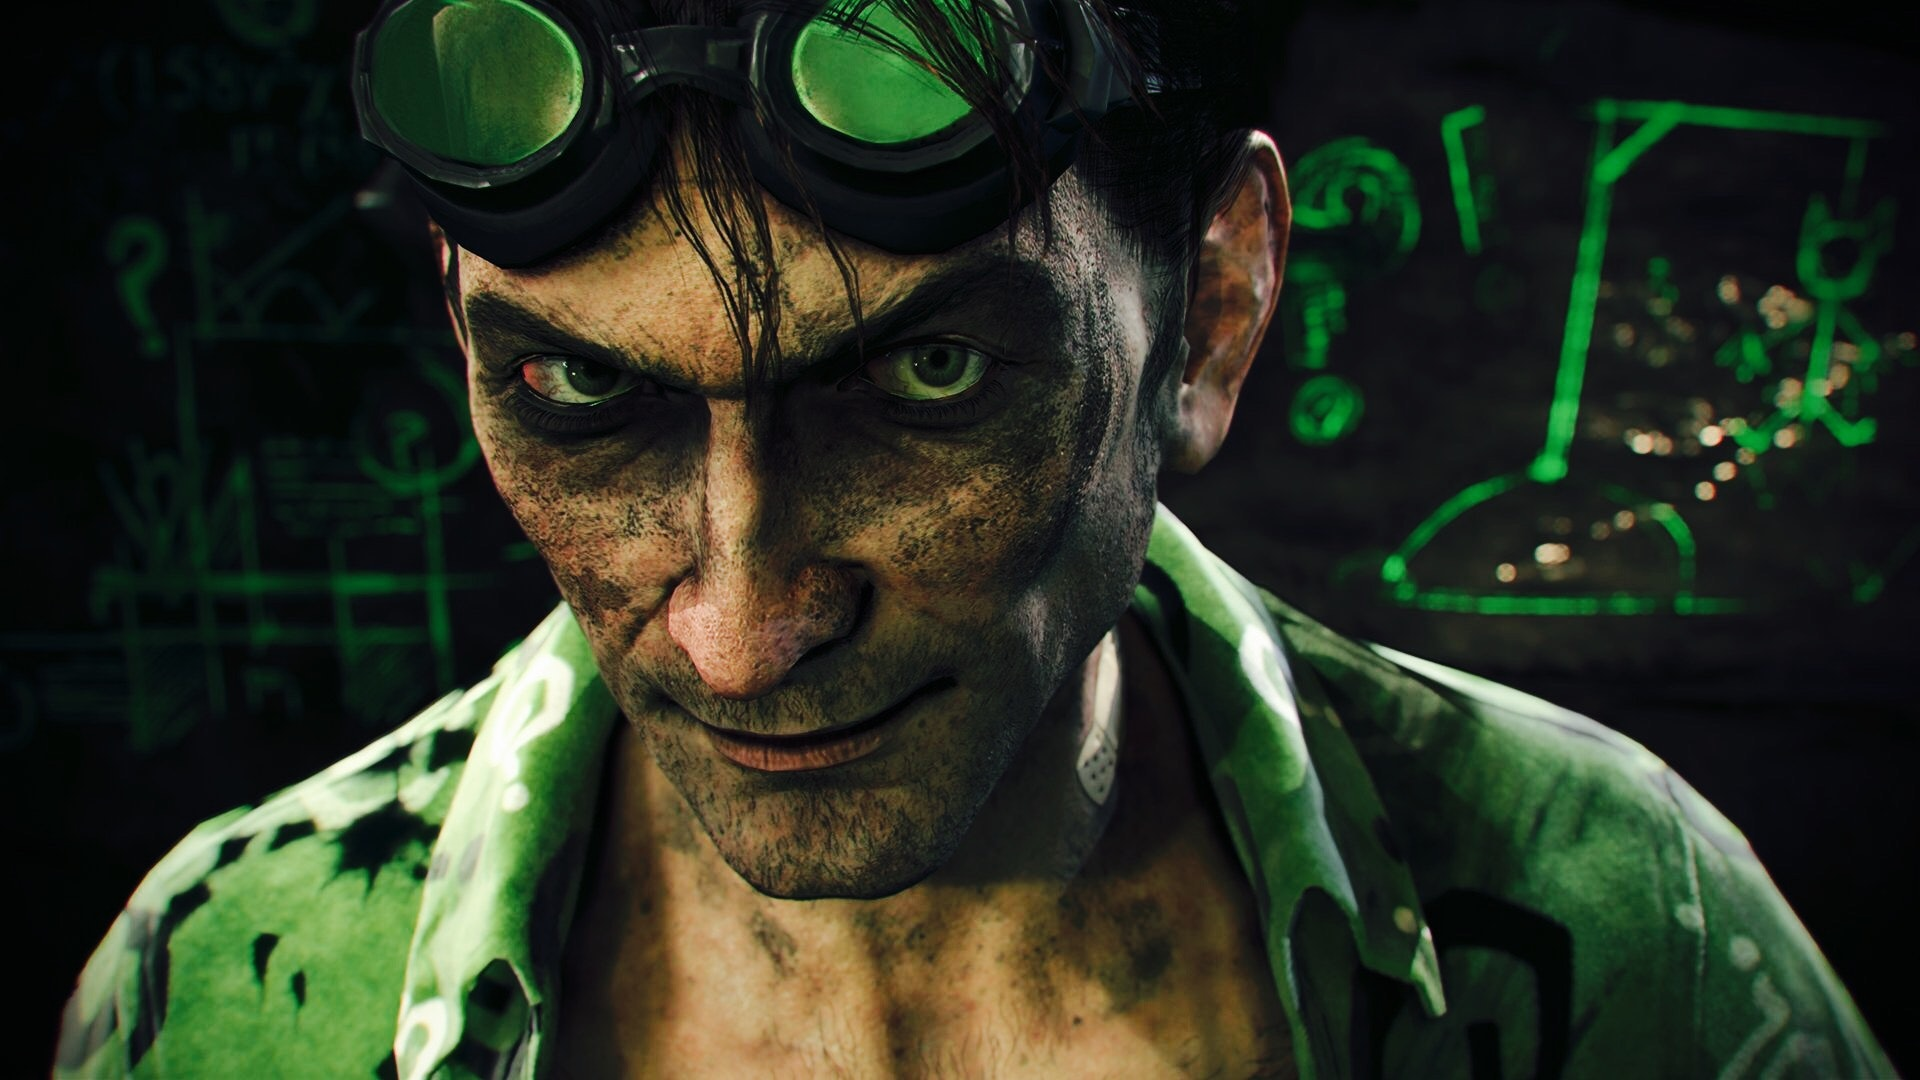 Riddler in the Arkham video games.